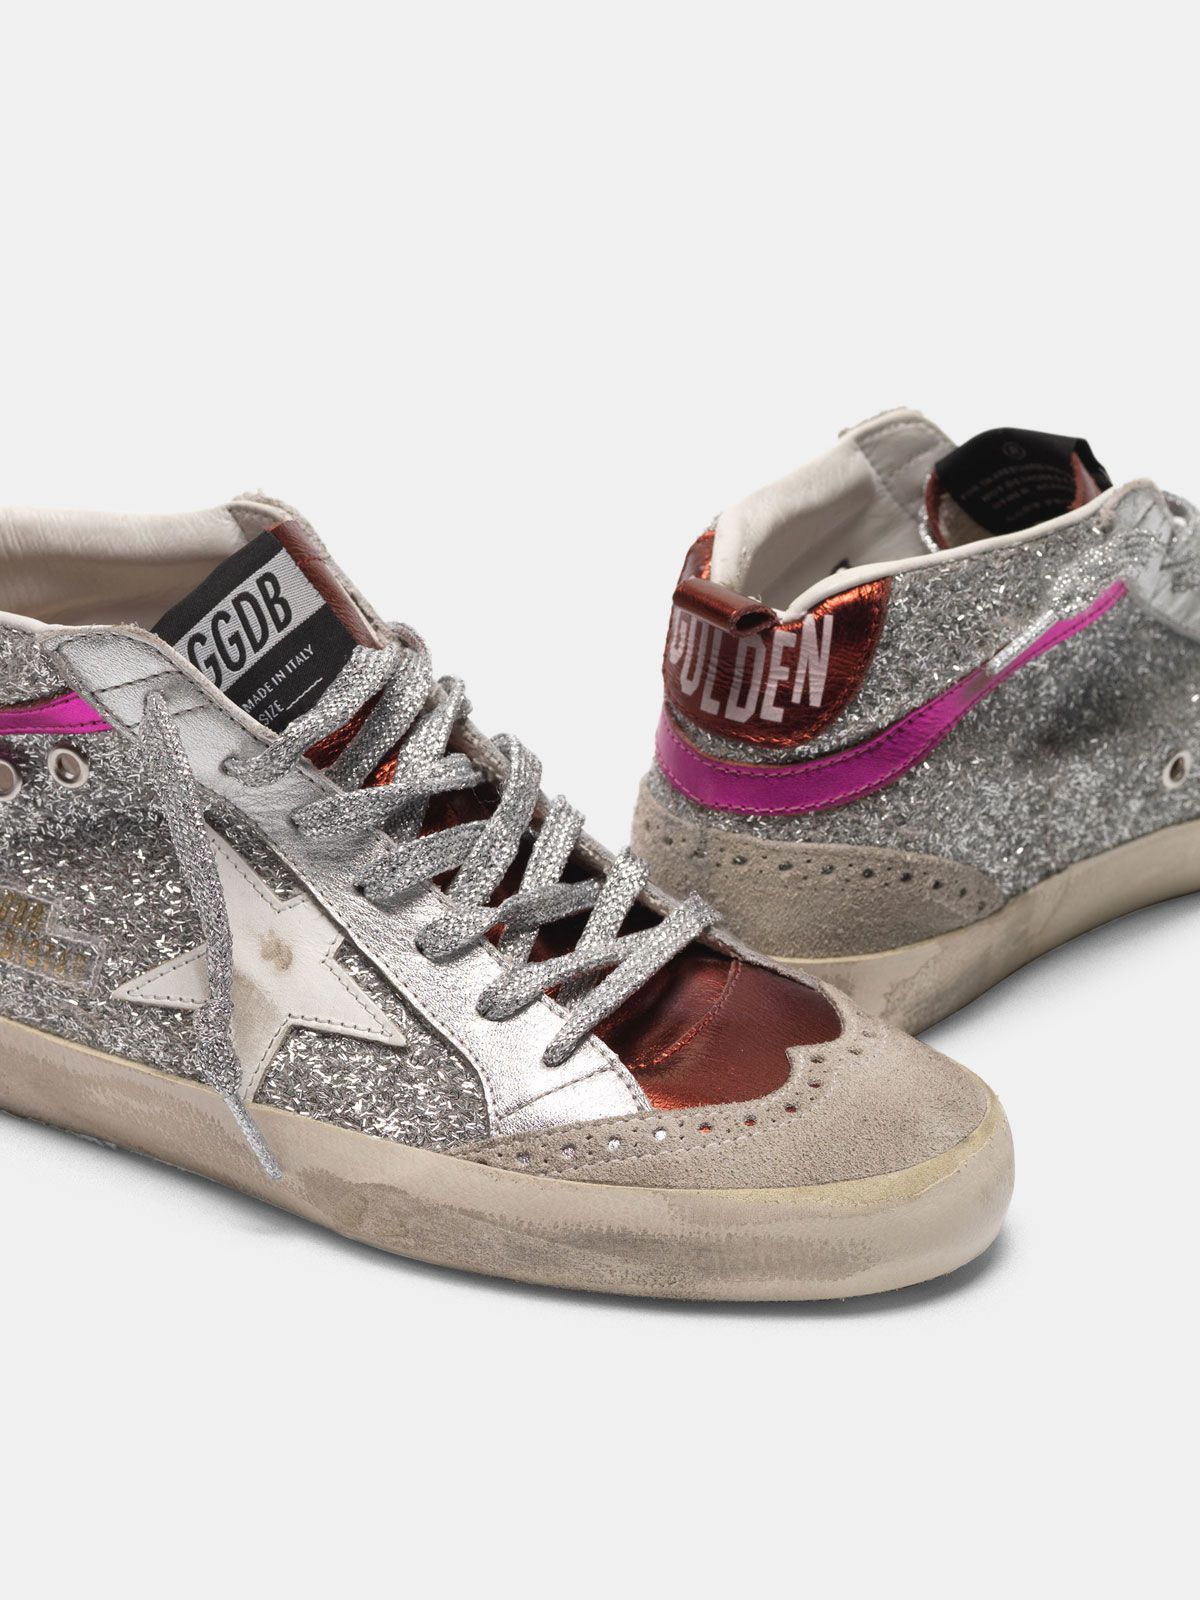 Golden Goose - Mid-Star sneakers in metallic leather and glitter in